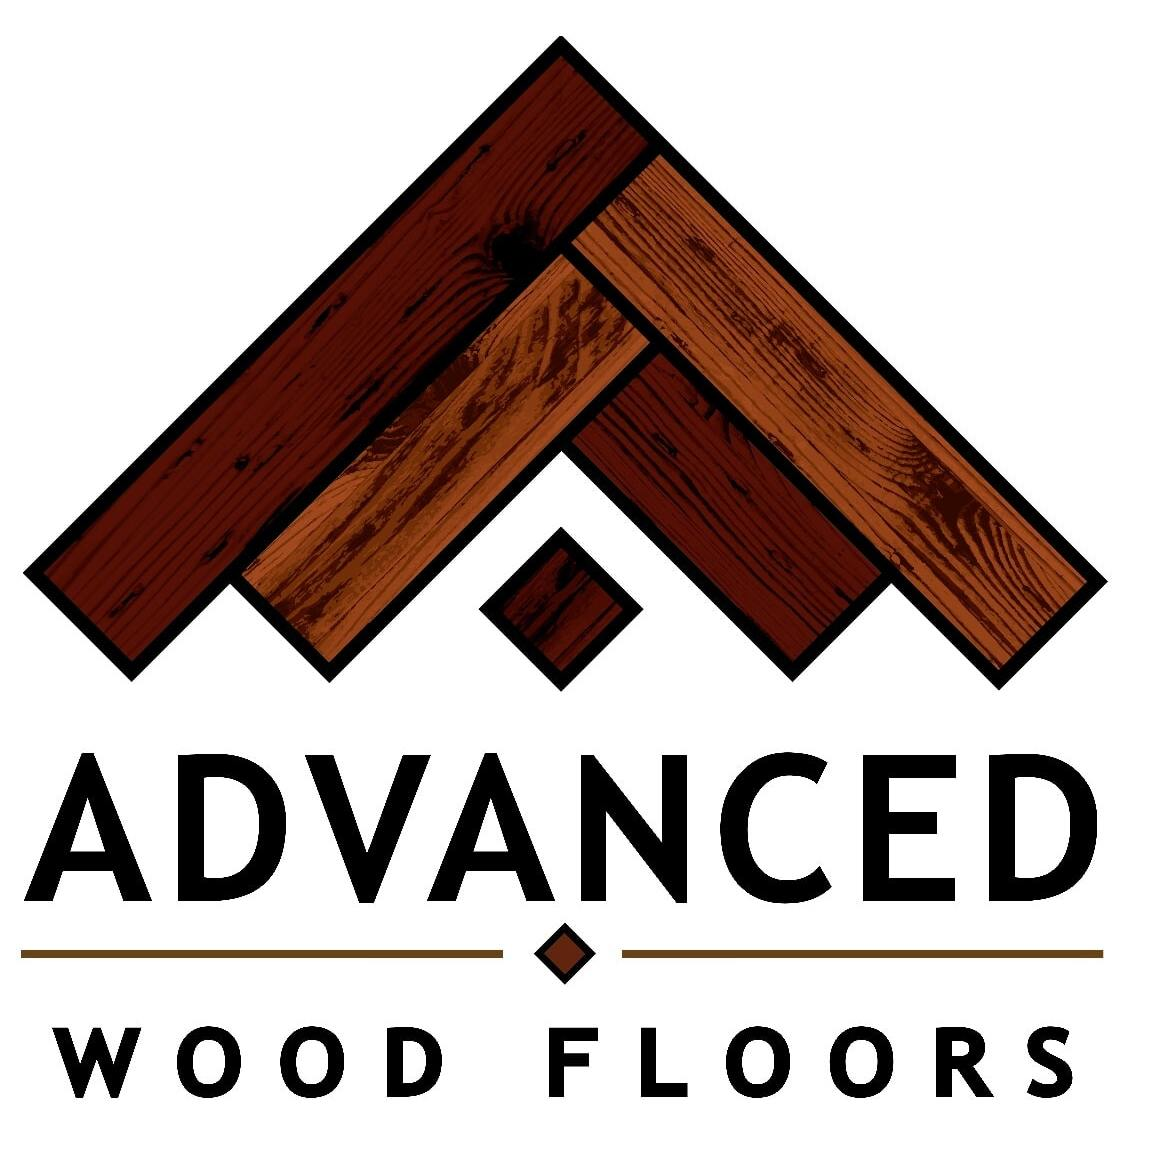 Advanced Wood Floors